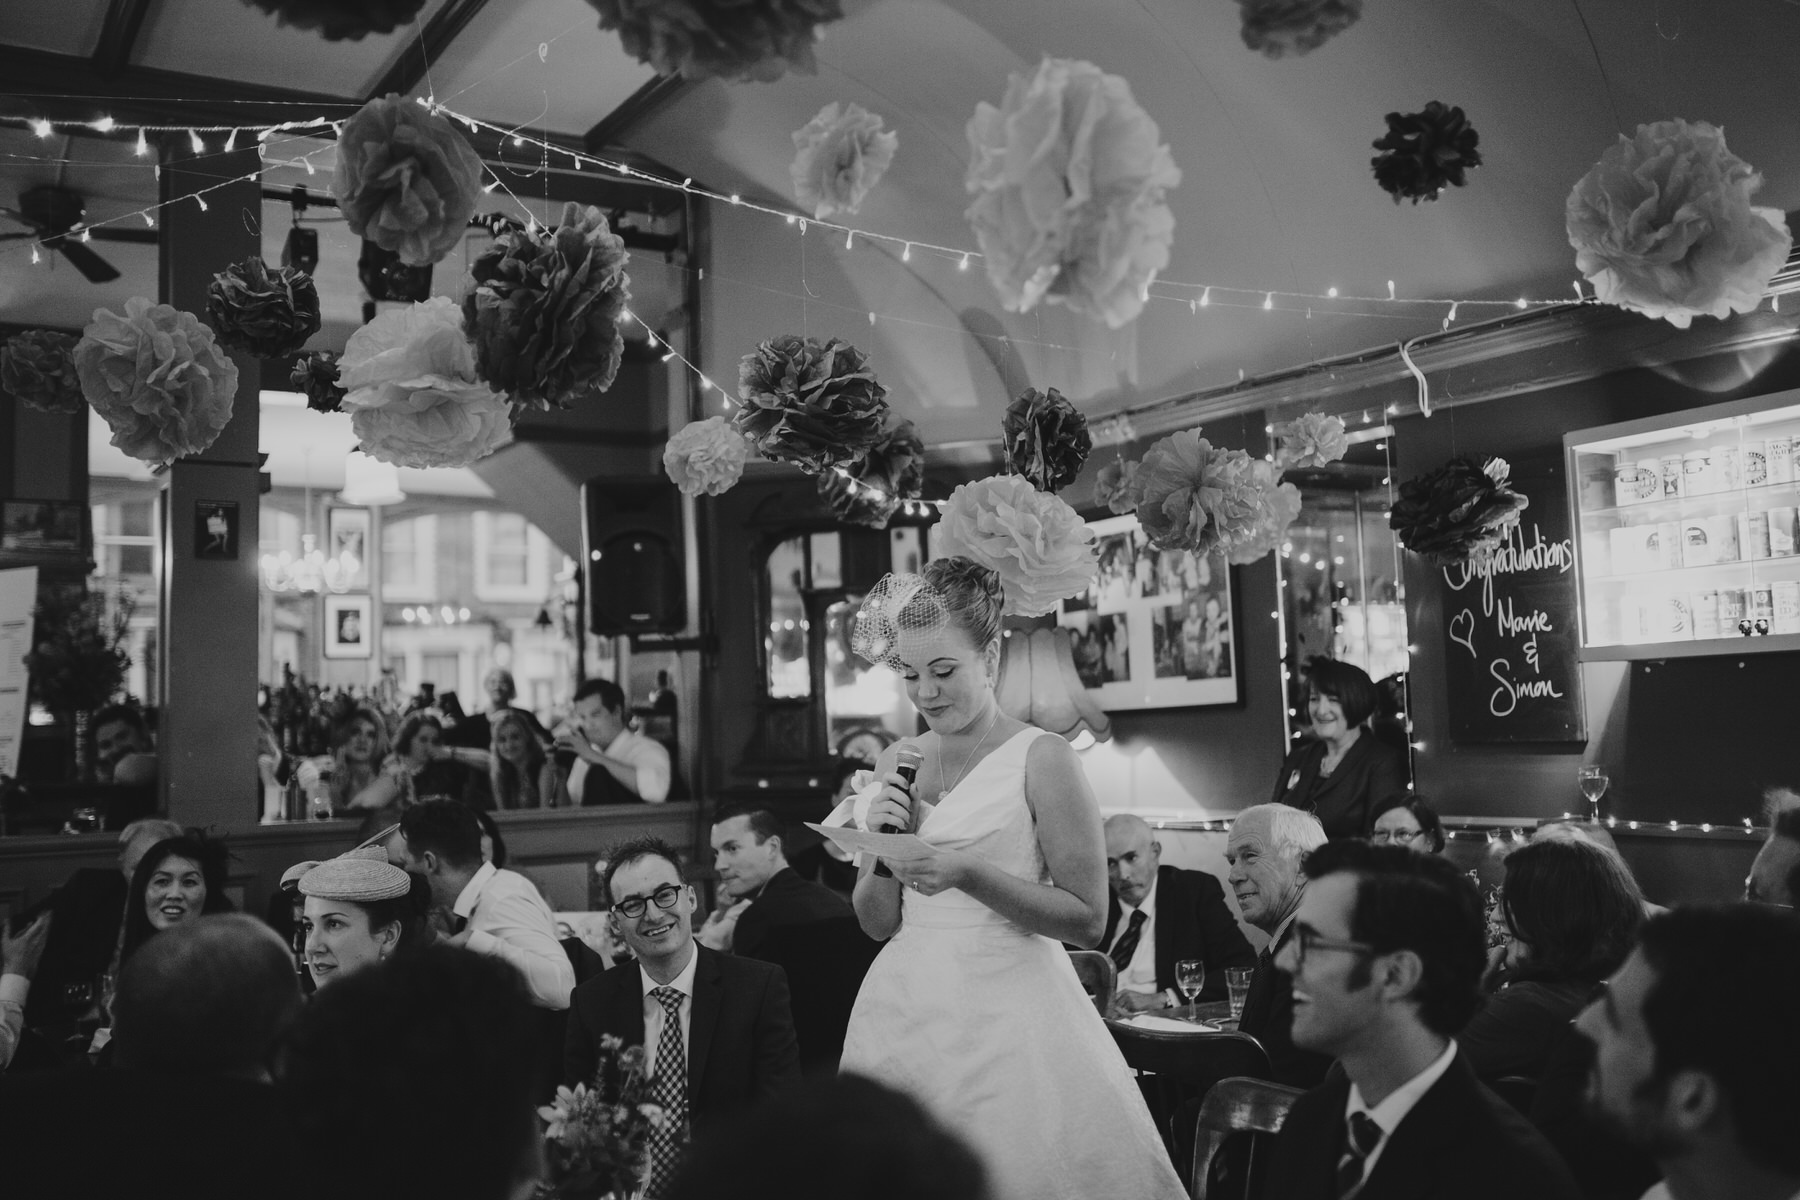 290-Londesborough-Pub-wedding-bride-speech.jpg